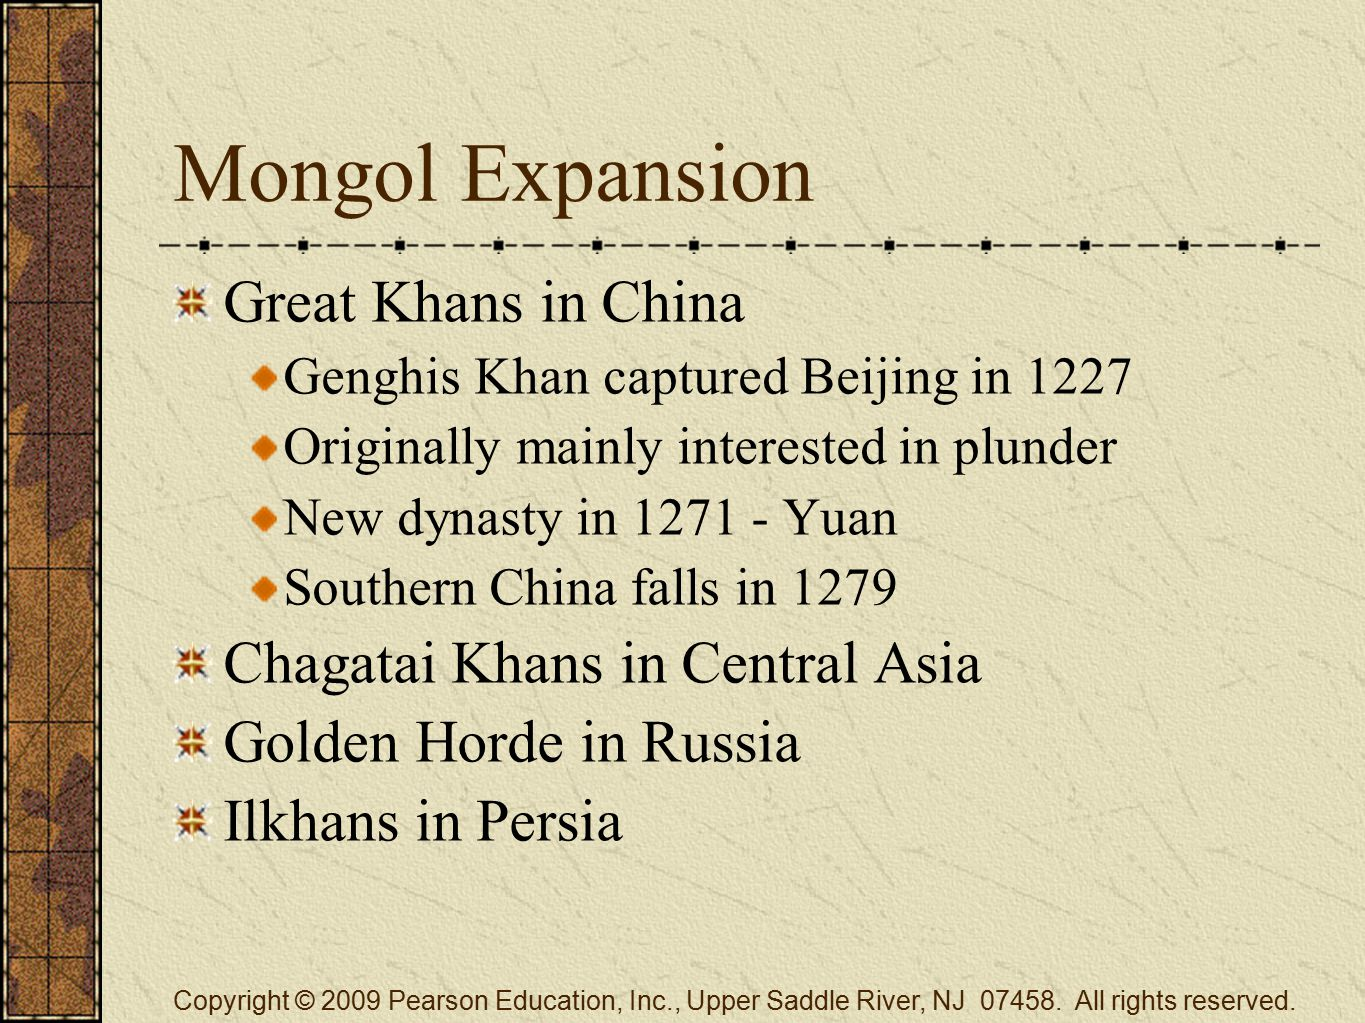 Mongol Expansion Great Khans in China Genghis Khan captured Beijing in 1227 Originally mainly interested in plunder New dynasty in 1271 - Yuan Souther